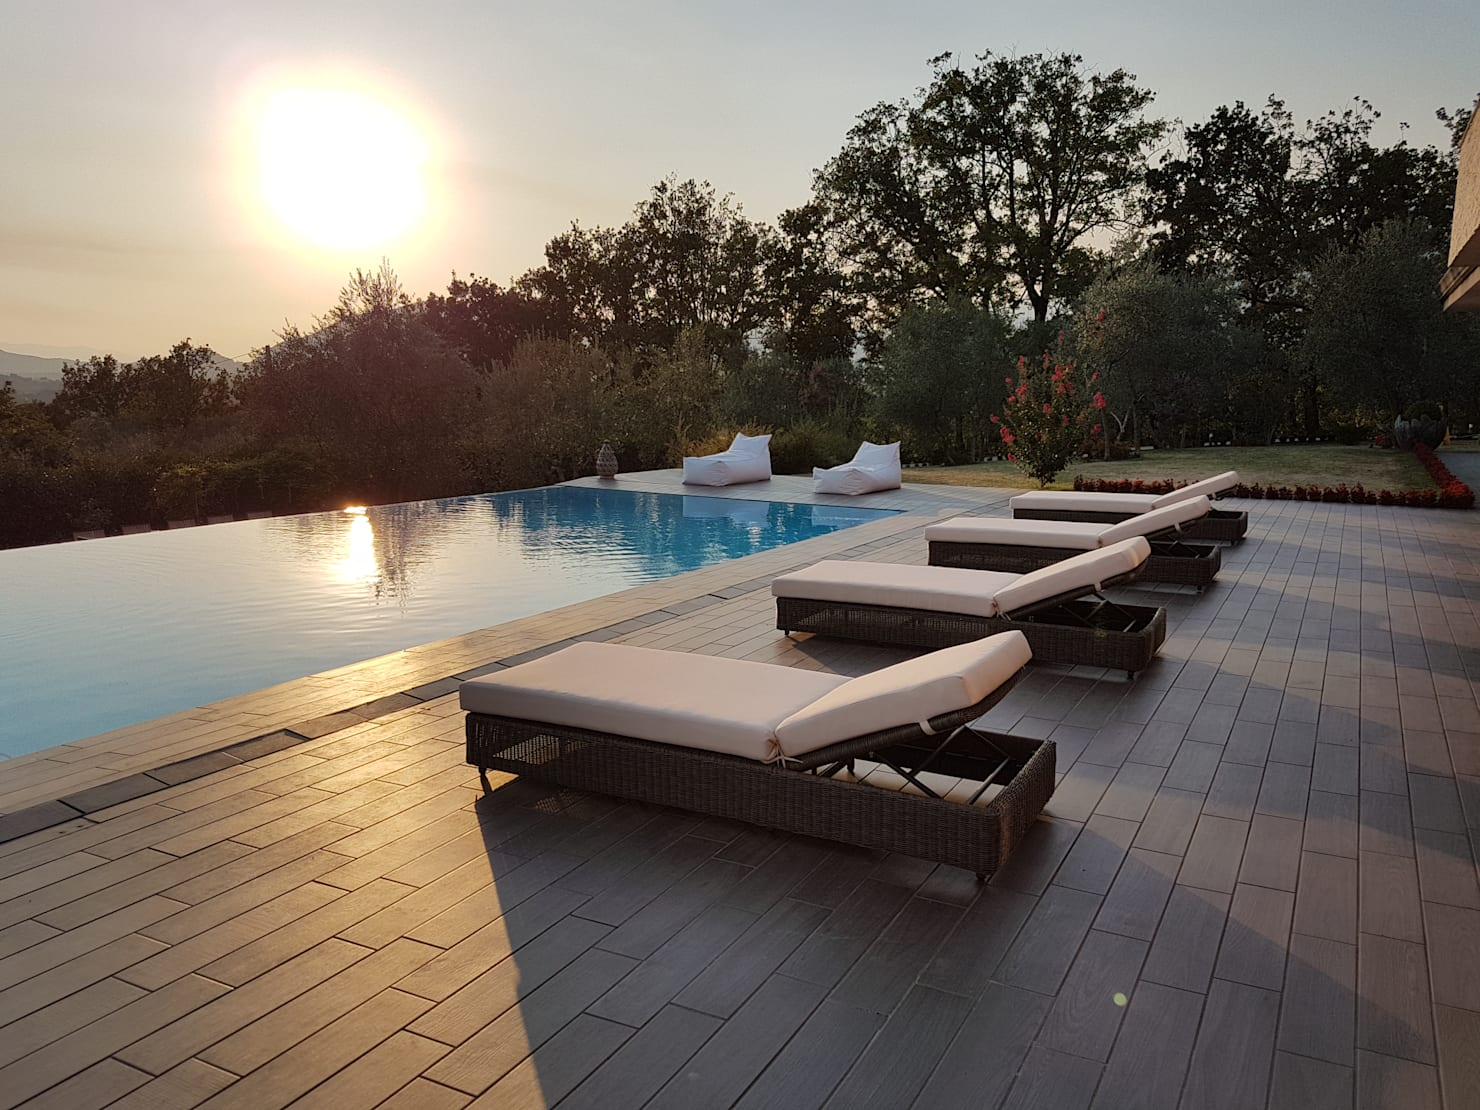 Arredamento Bordo Piscina Homify Italia On Flipboard